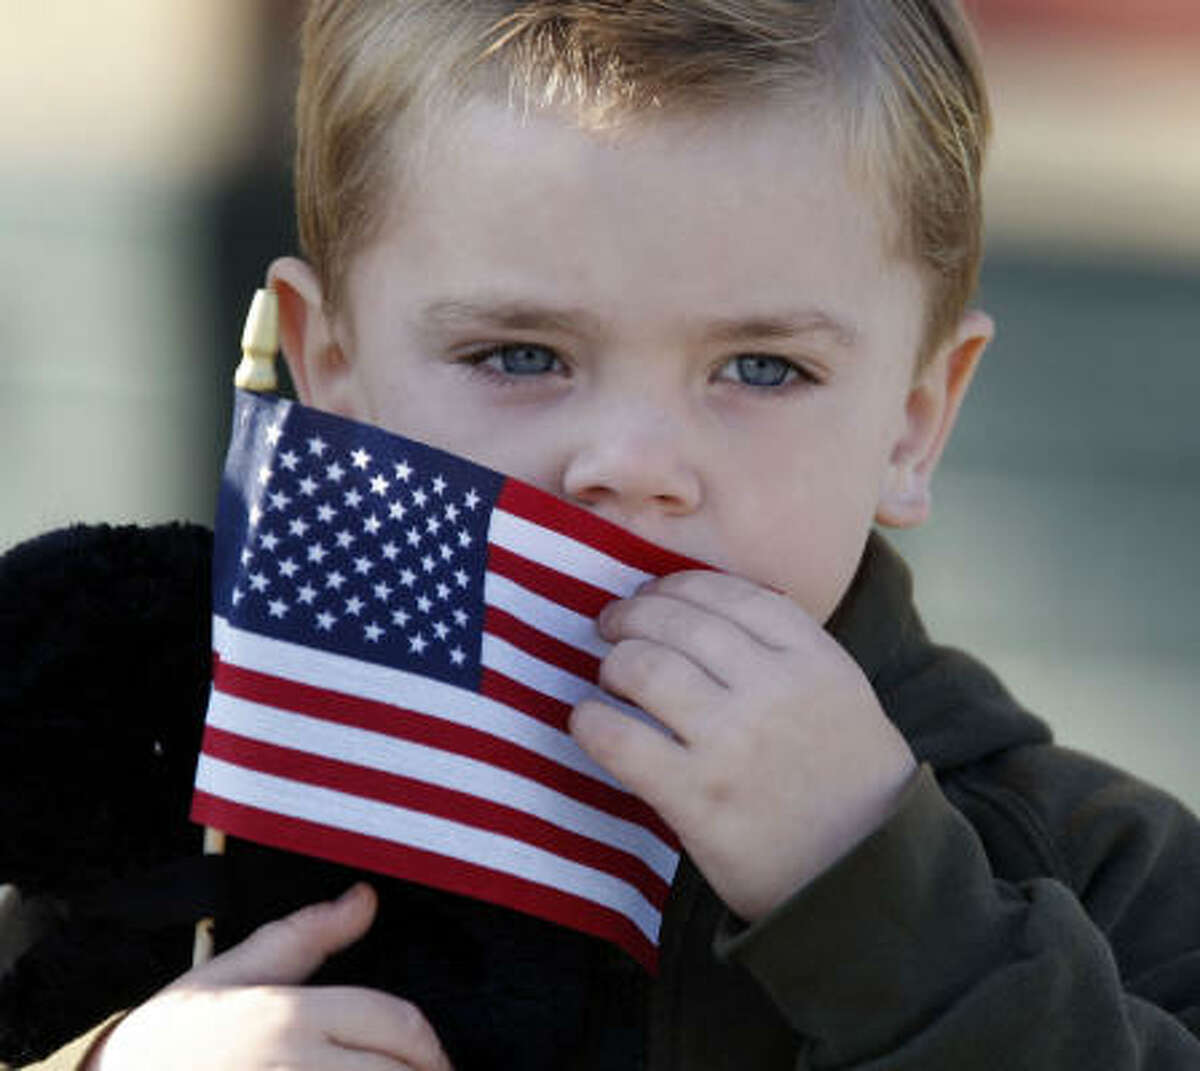 Christopher Johnson, 3, waits for the funeral procession for Army Staff Sgt. Justin DeCrow in Plymouth, Ind., on Nov. 14.